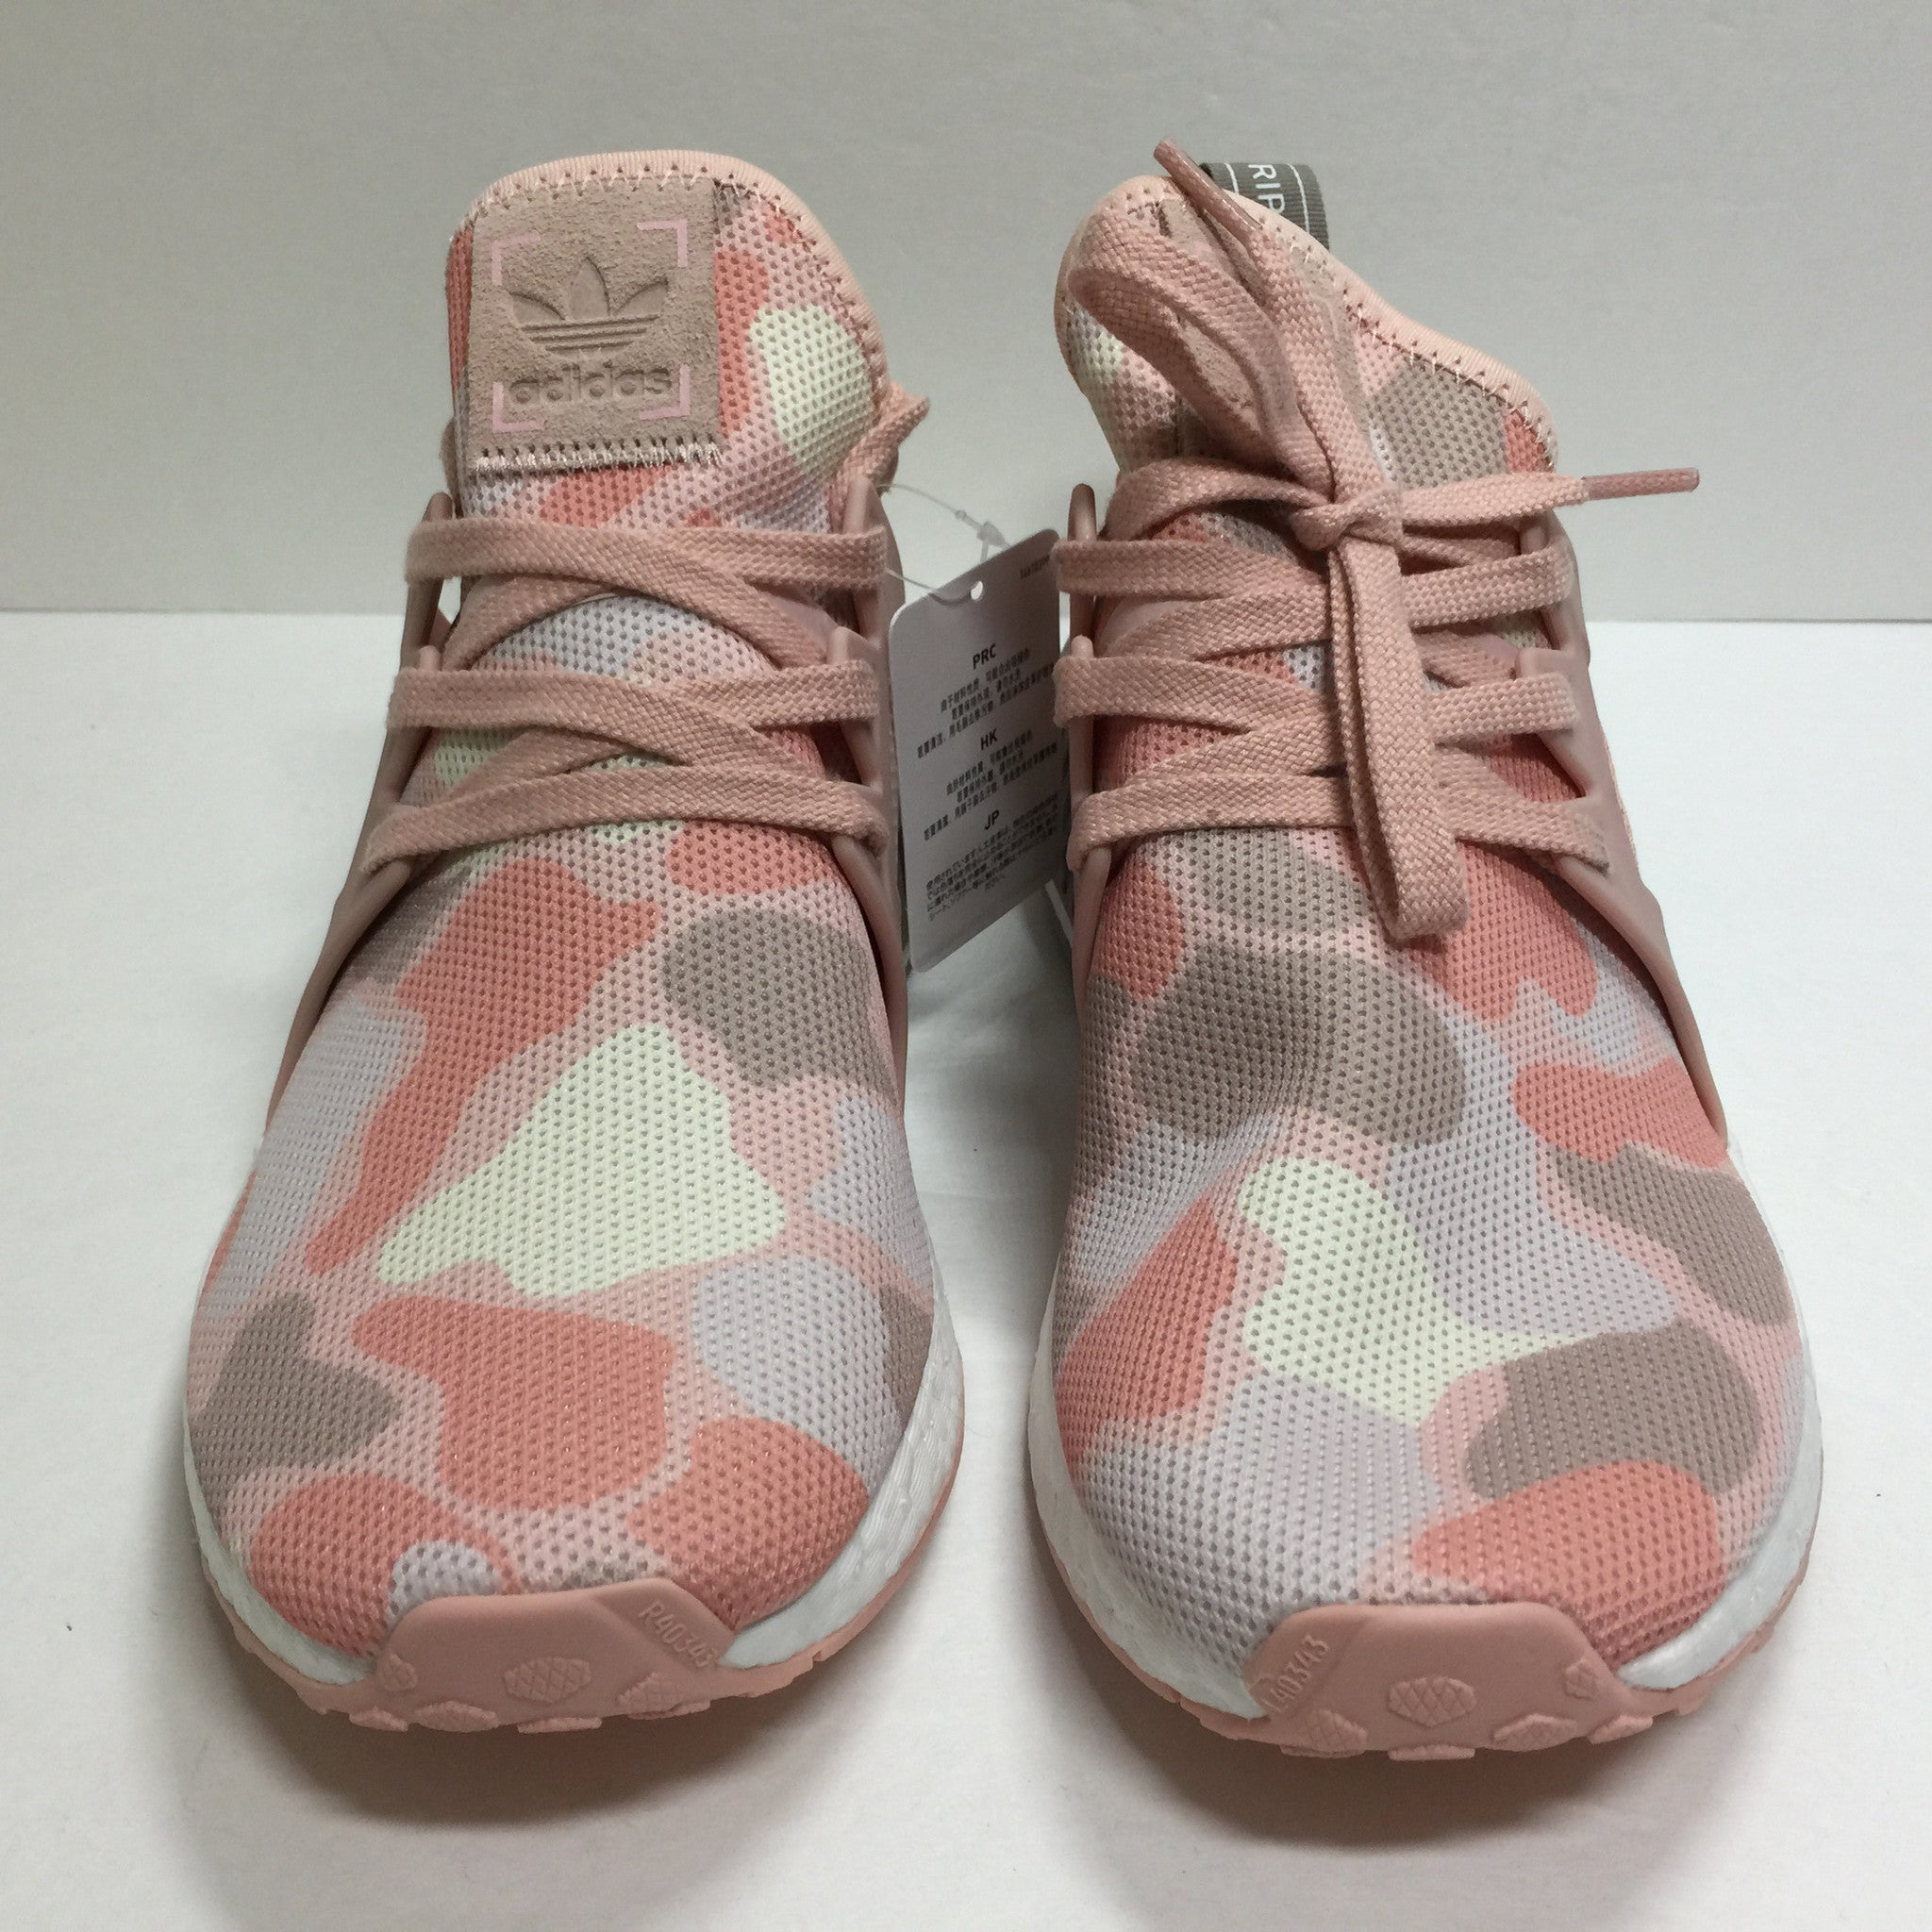 DS Adidas NMD XR1 W Pink Camo Size 7/Size 8.5 - DOPEFOOT  - 3